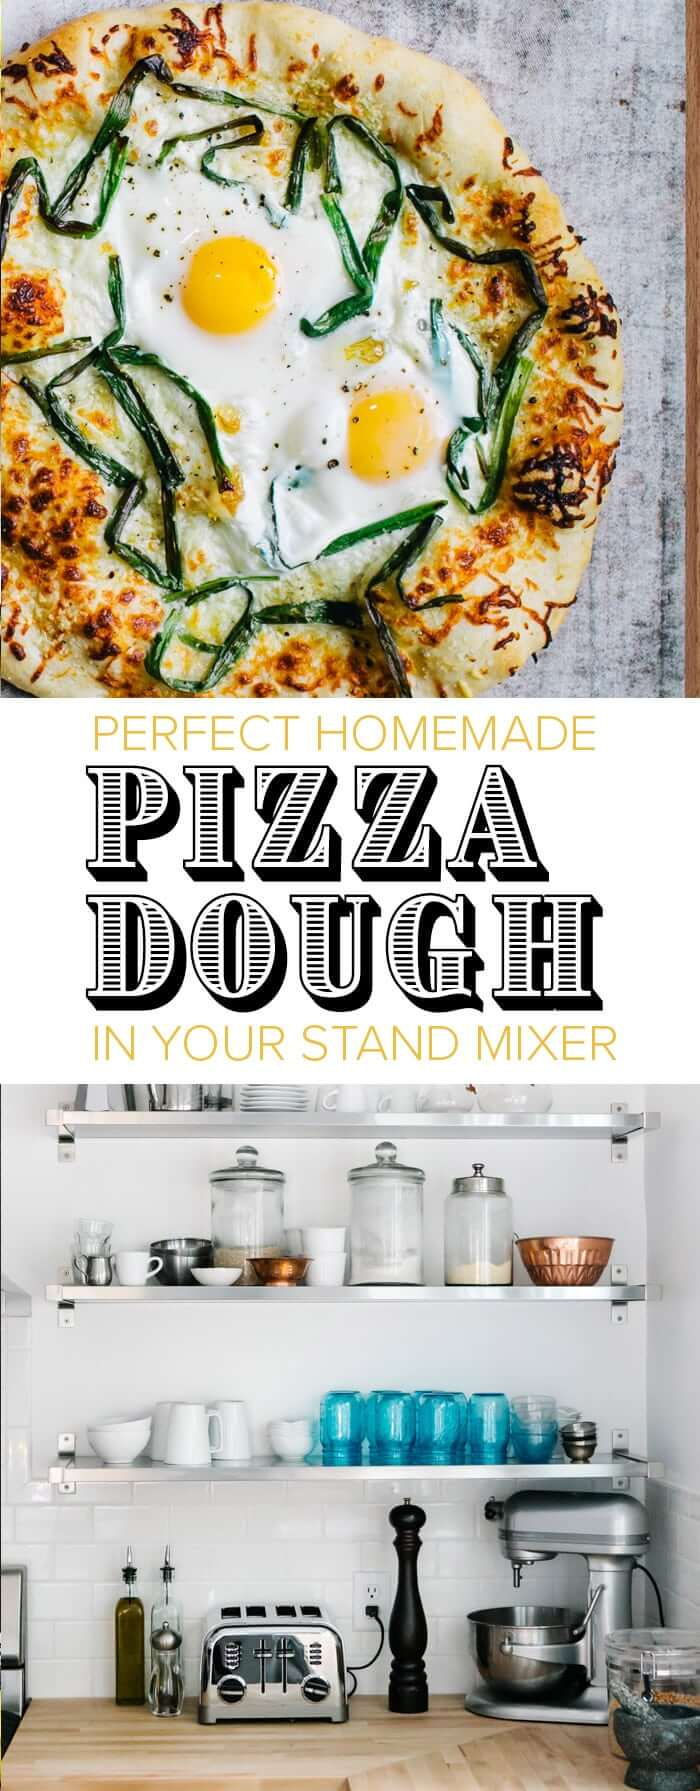 Perfect Homemade Pizza Dough | A Couple Cooks